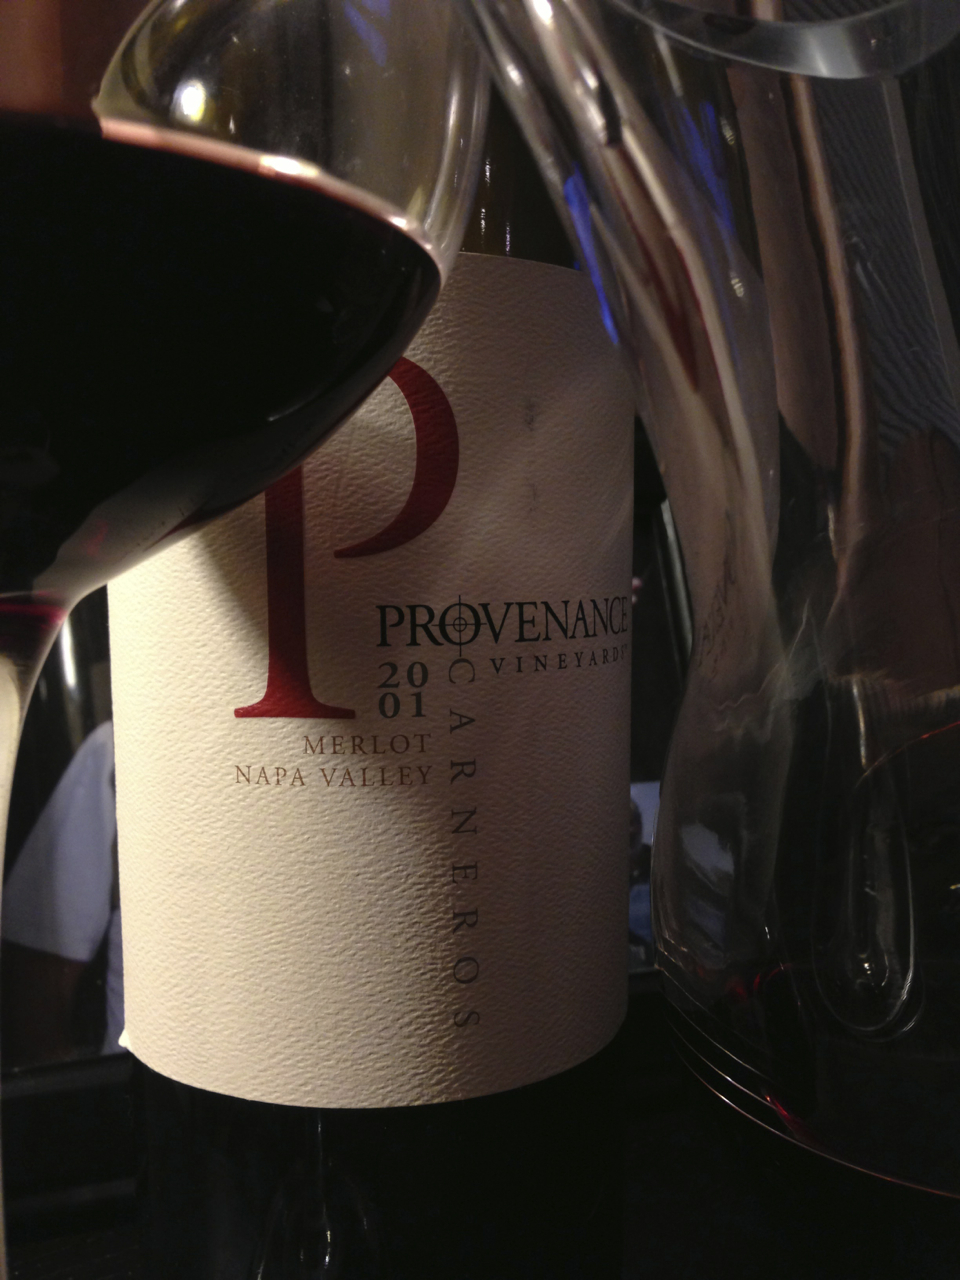 2001 Provenance Carneros Merlot